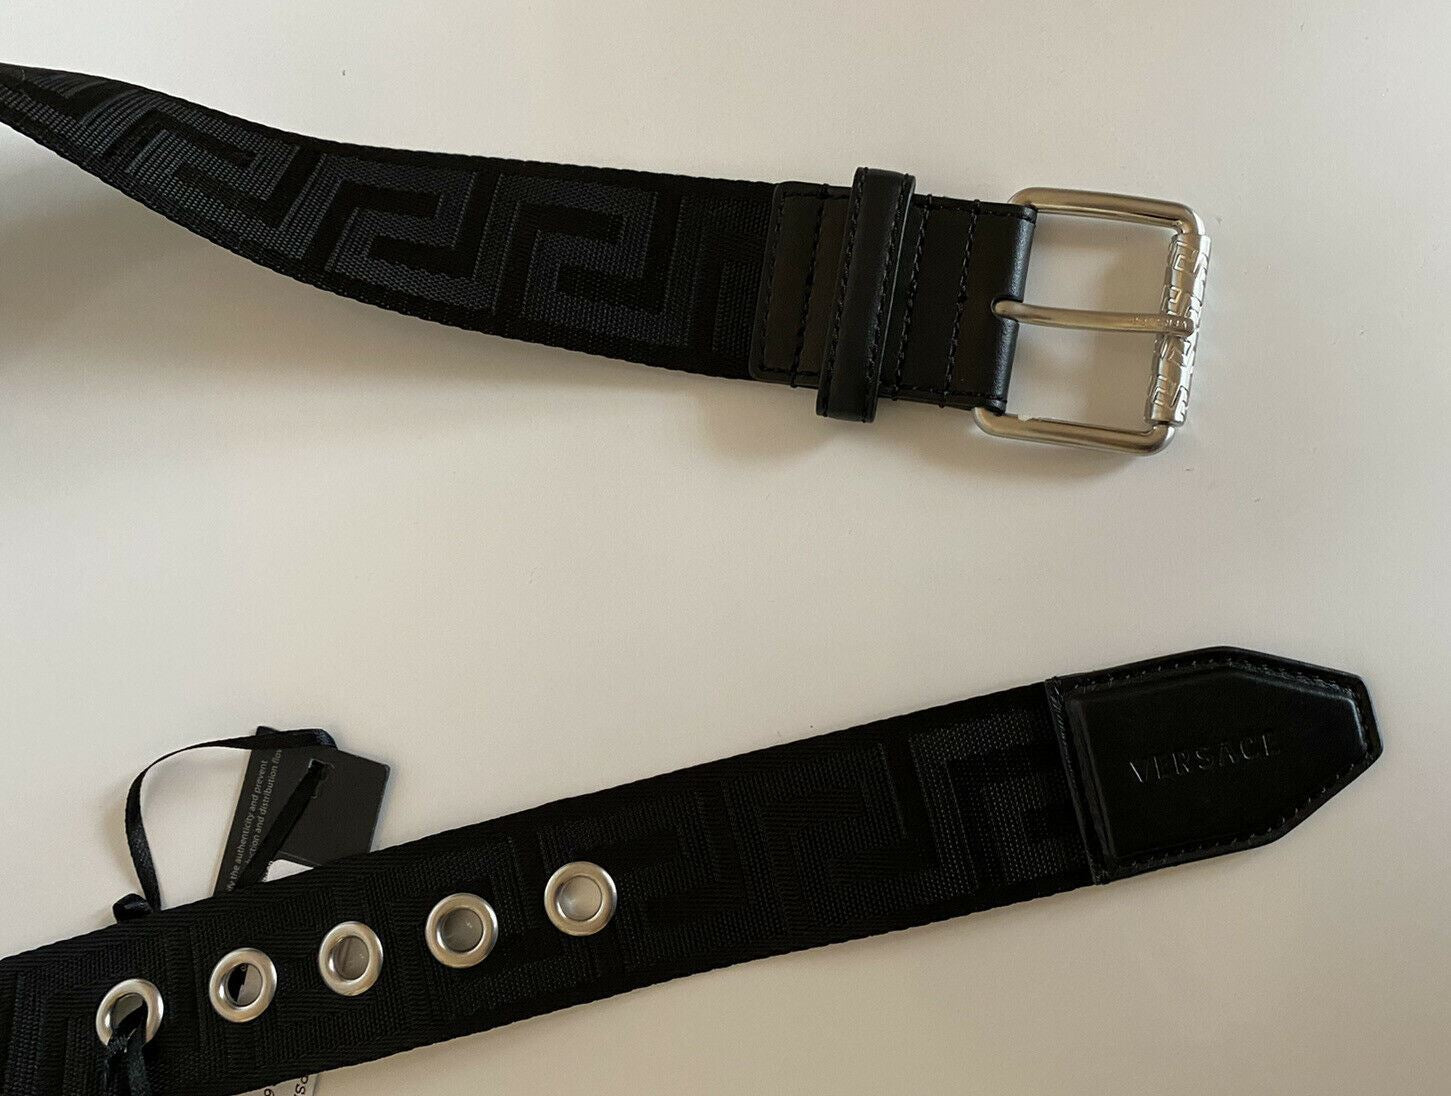 NWT $326 Versace Mens Fixed Length Belt Black 75/30 Made in Italy